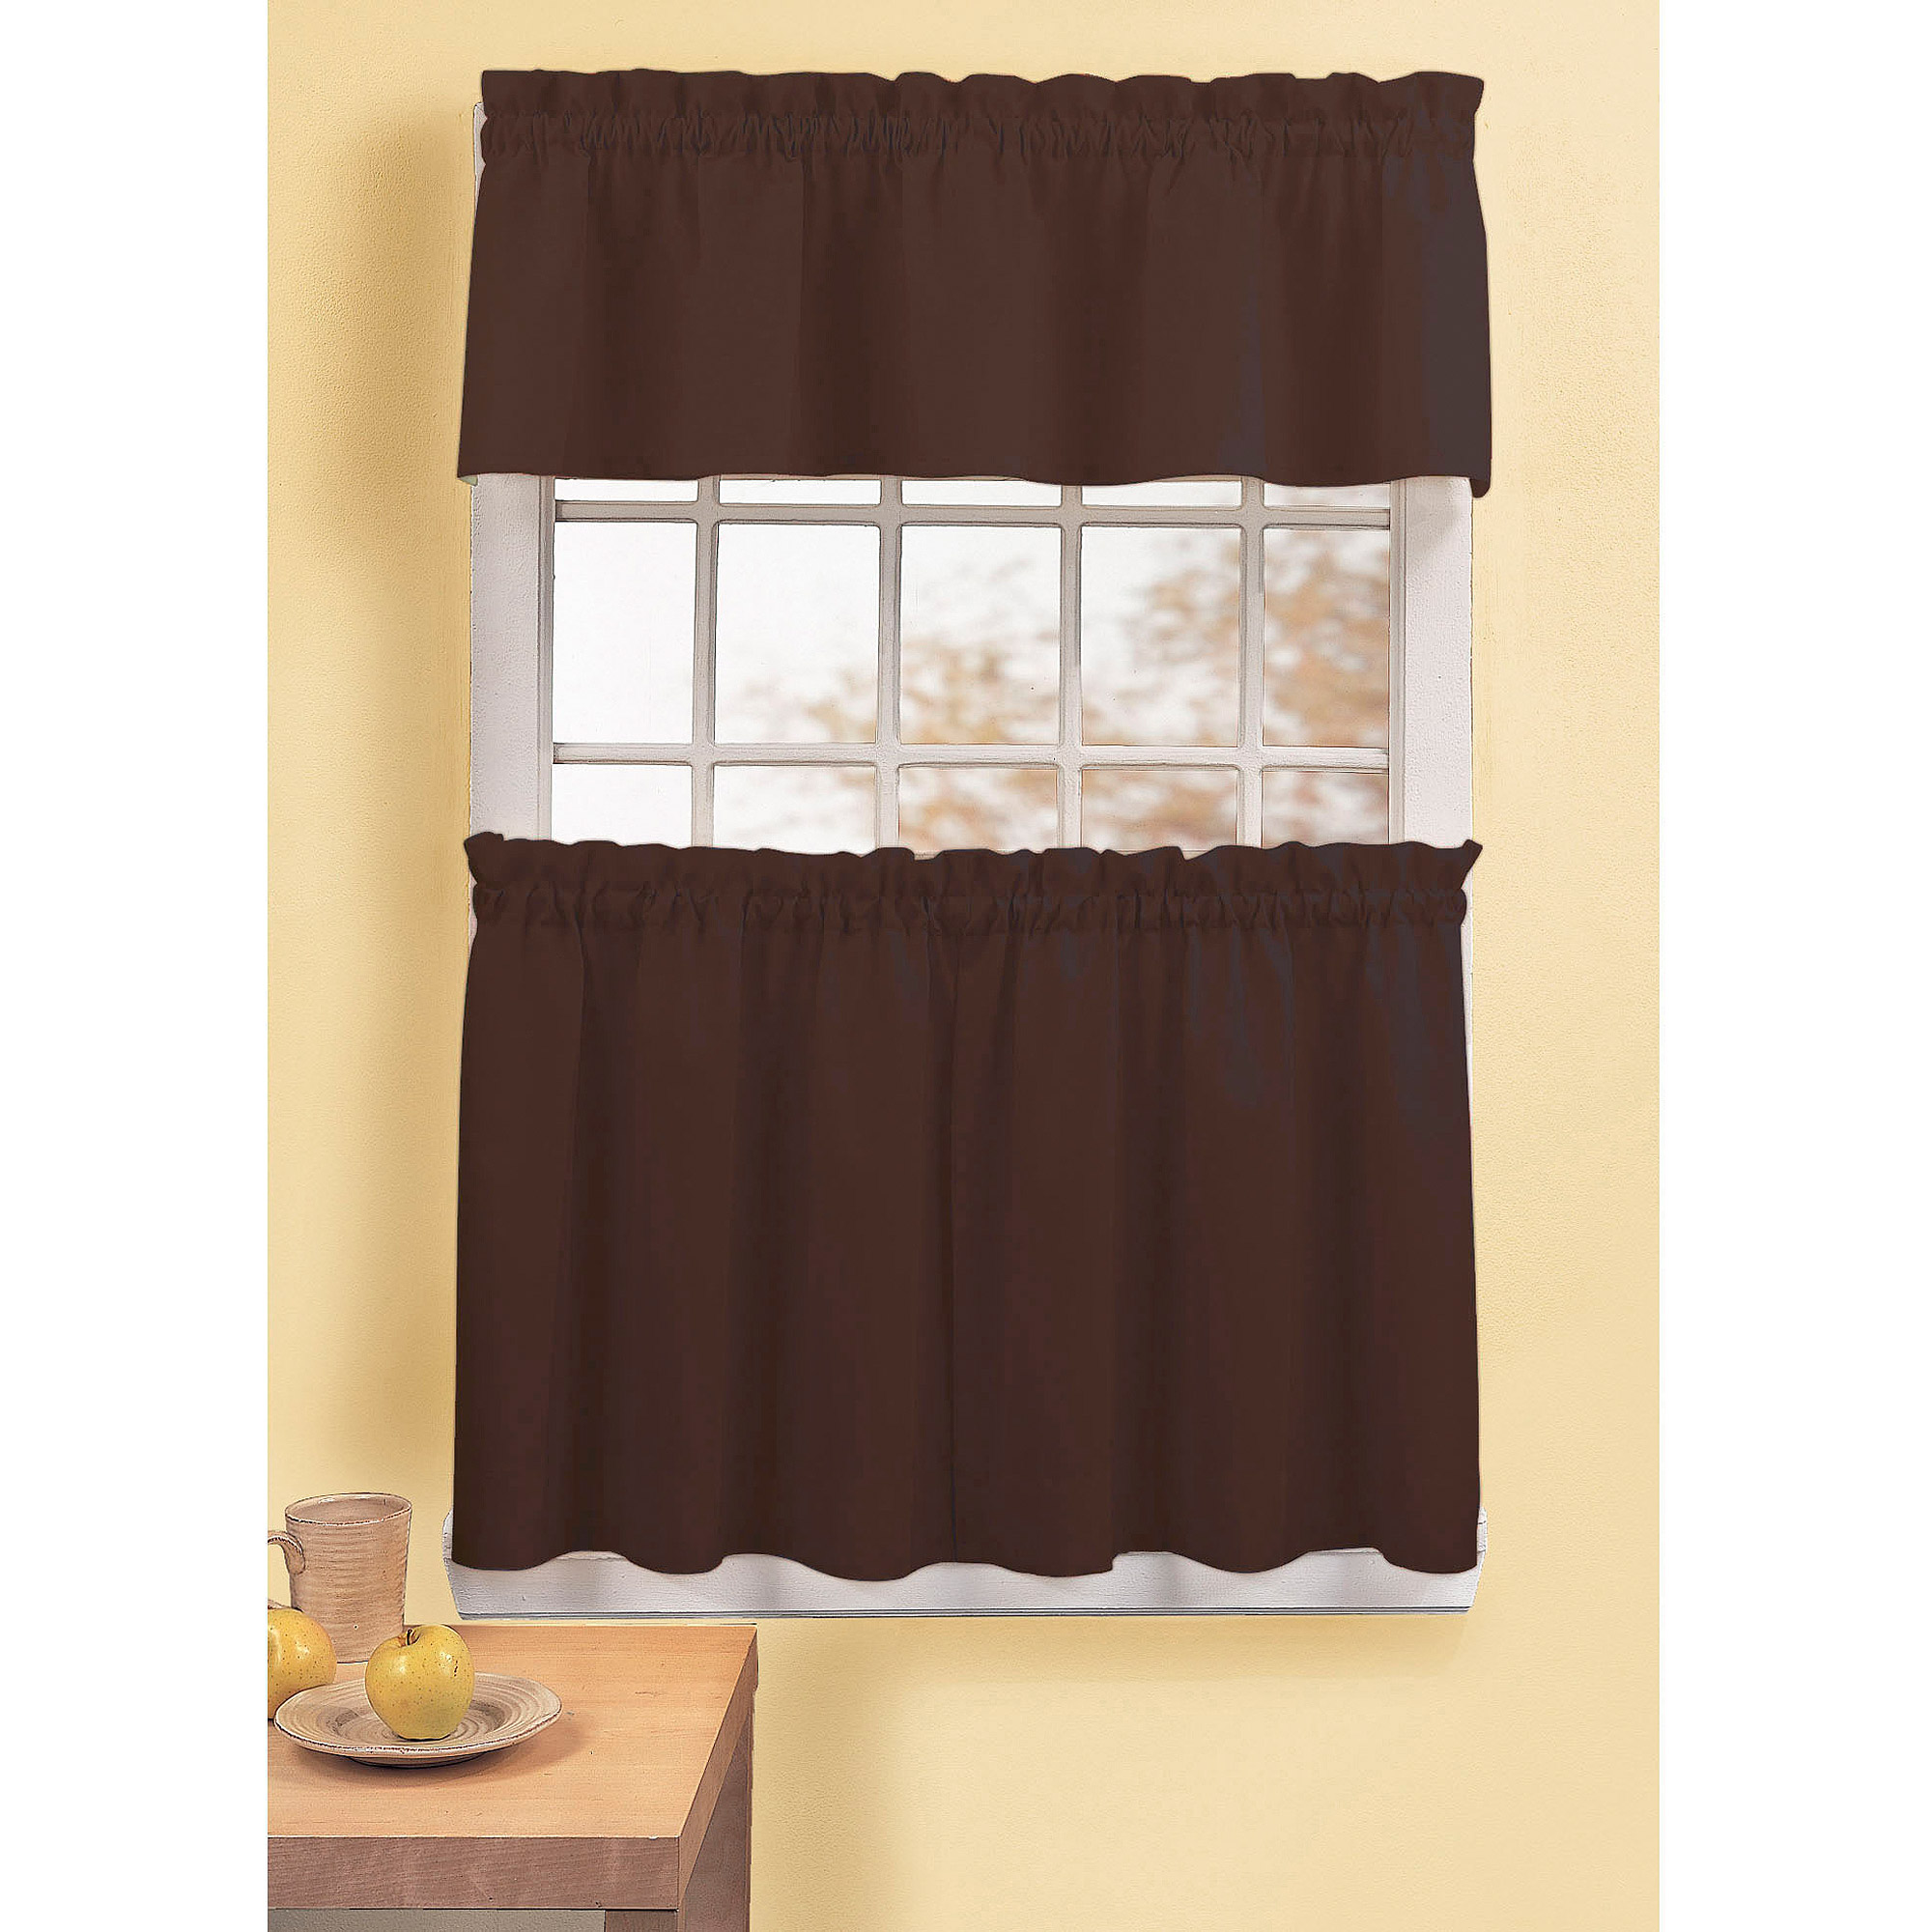 CHF & You Peachskin Tailored Tier Curtain Panel, Set of 2 or Single Valance